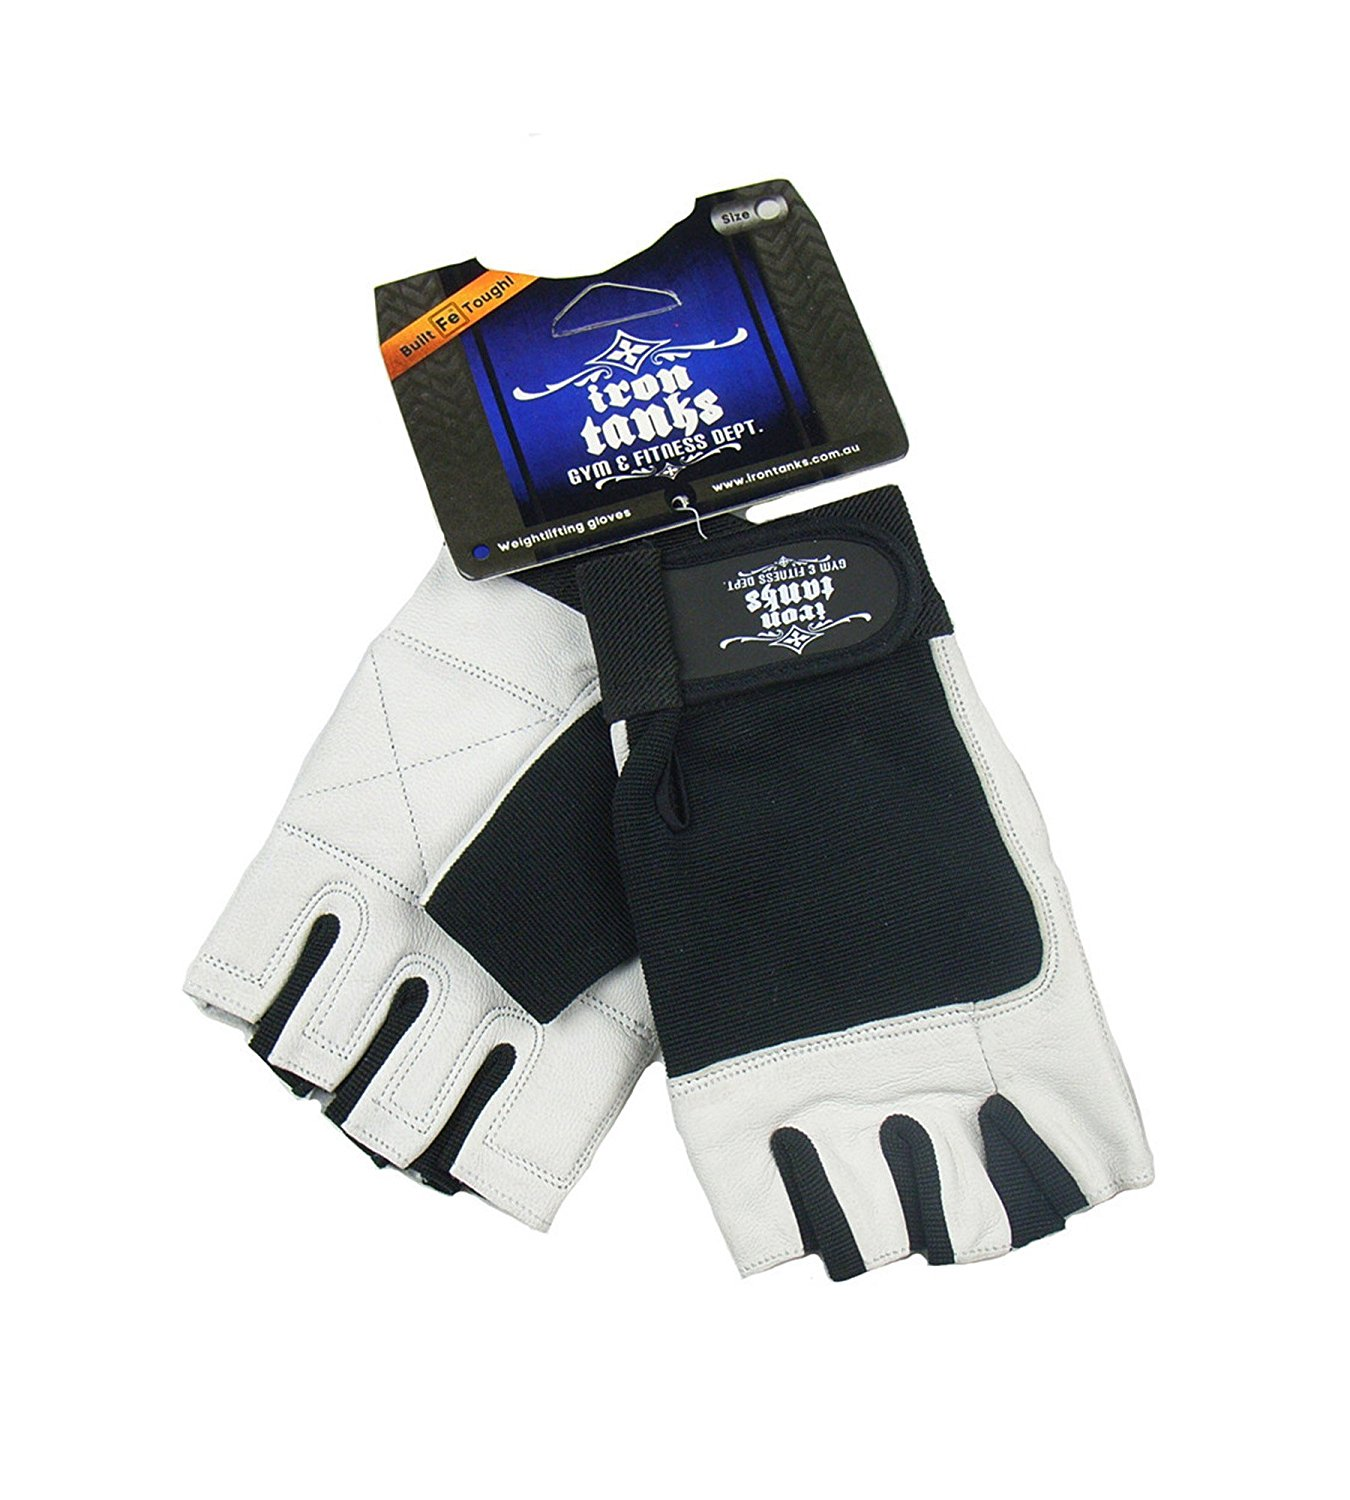 Iron Tanks Premium Leather Weightlifting Gloves